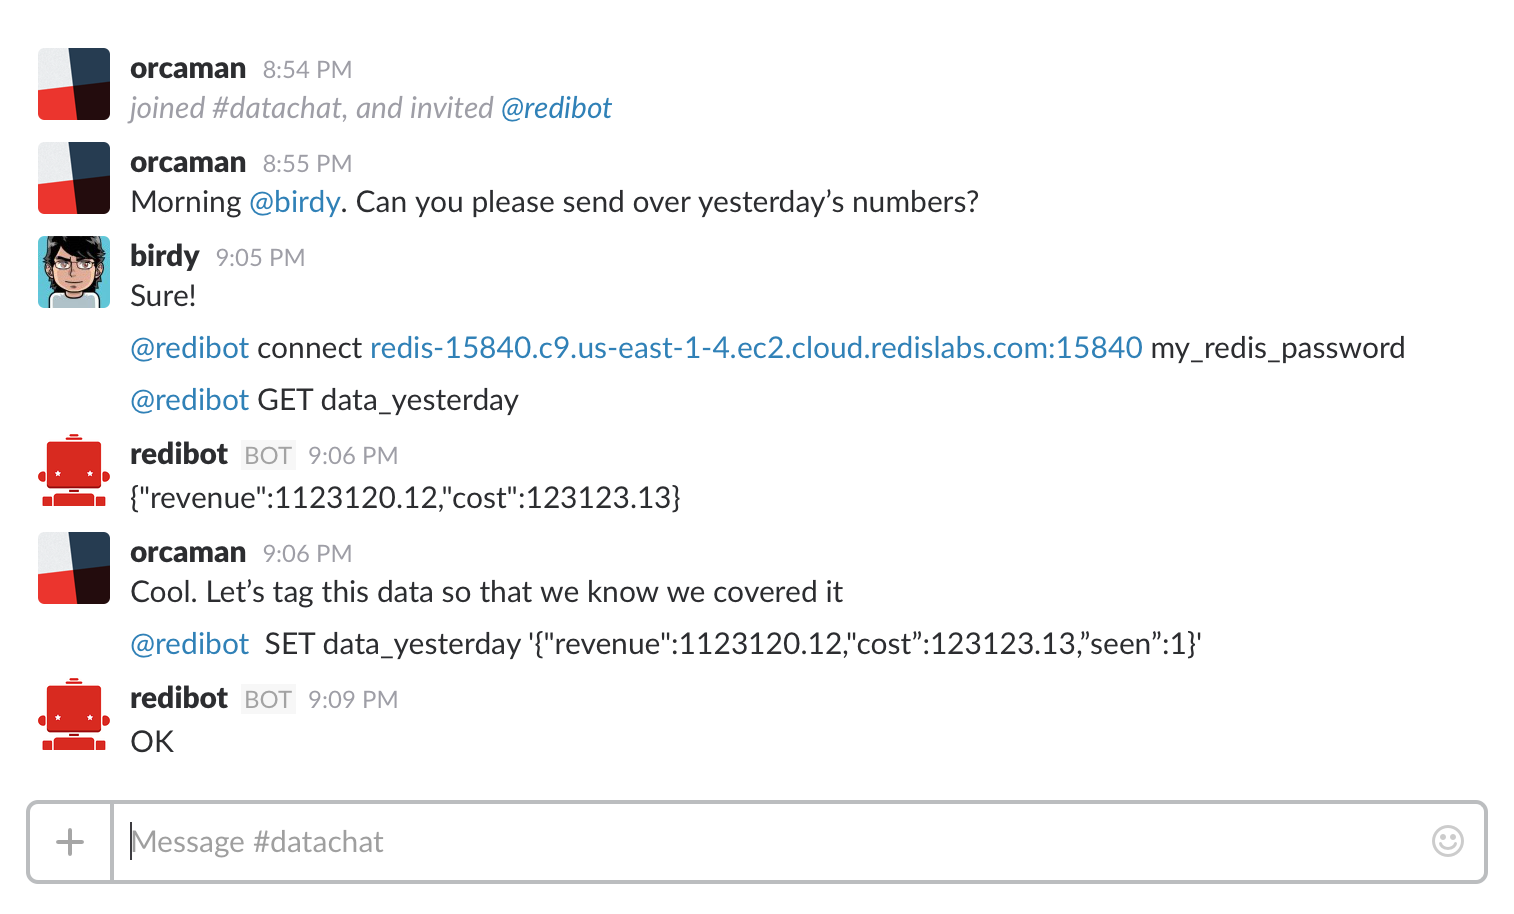 redibot: Bring redis into the Conversation! - By